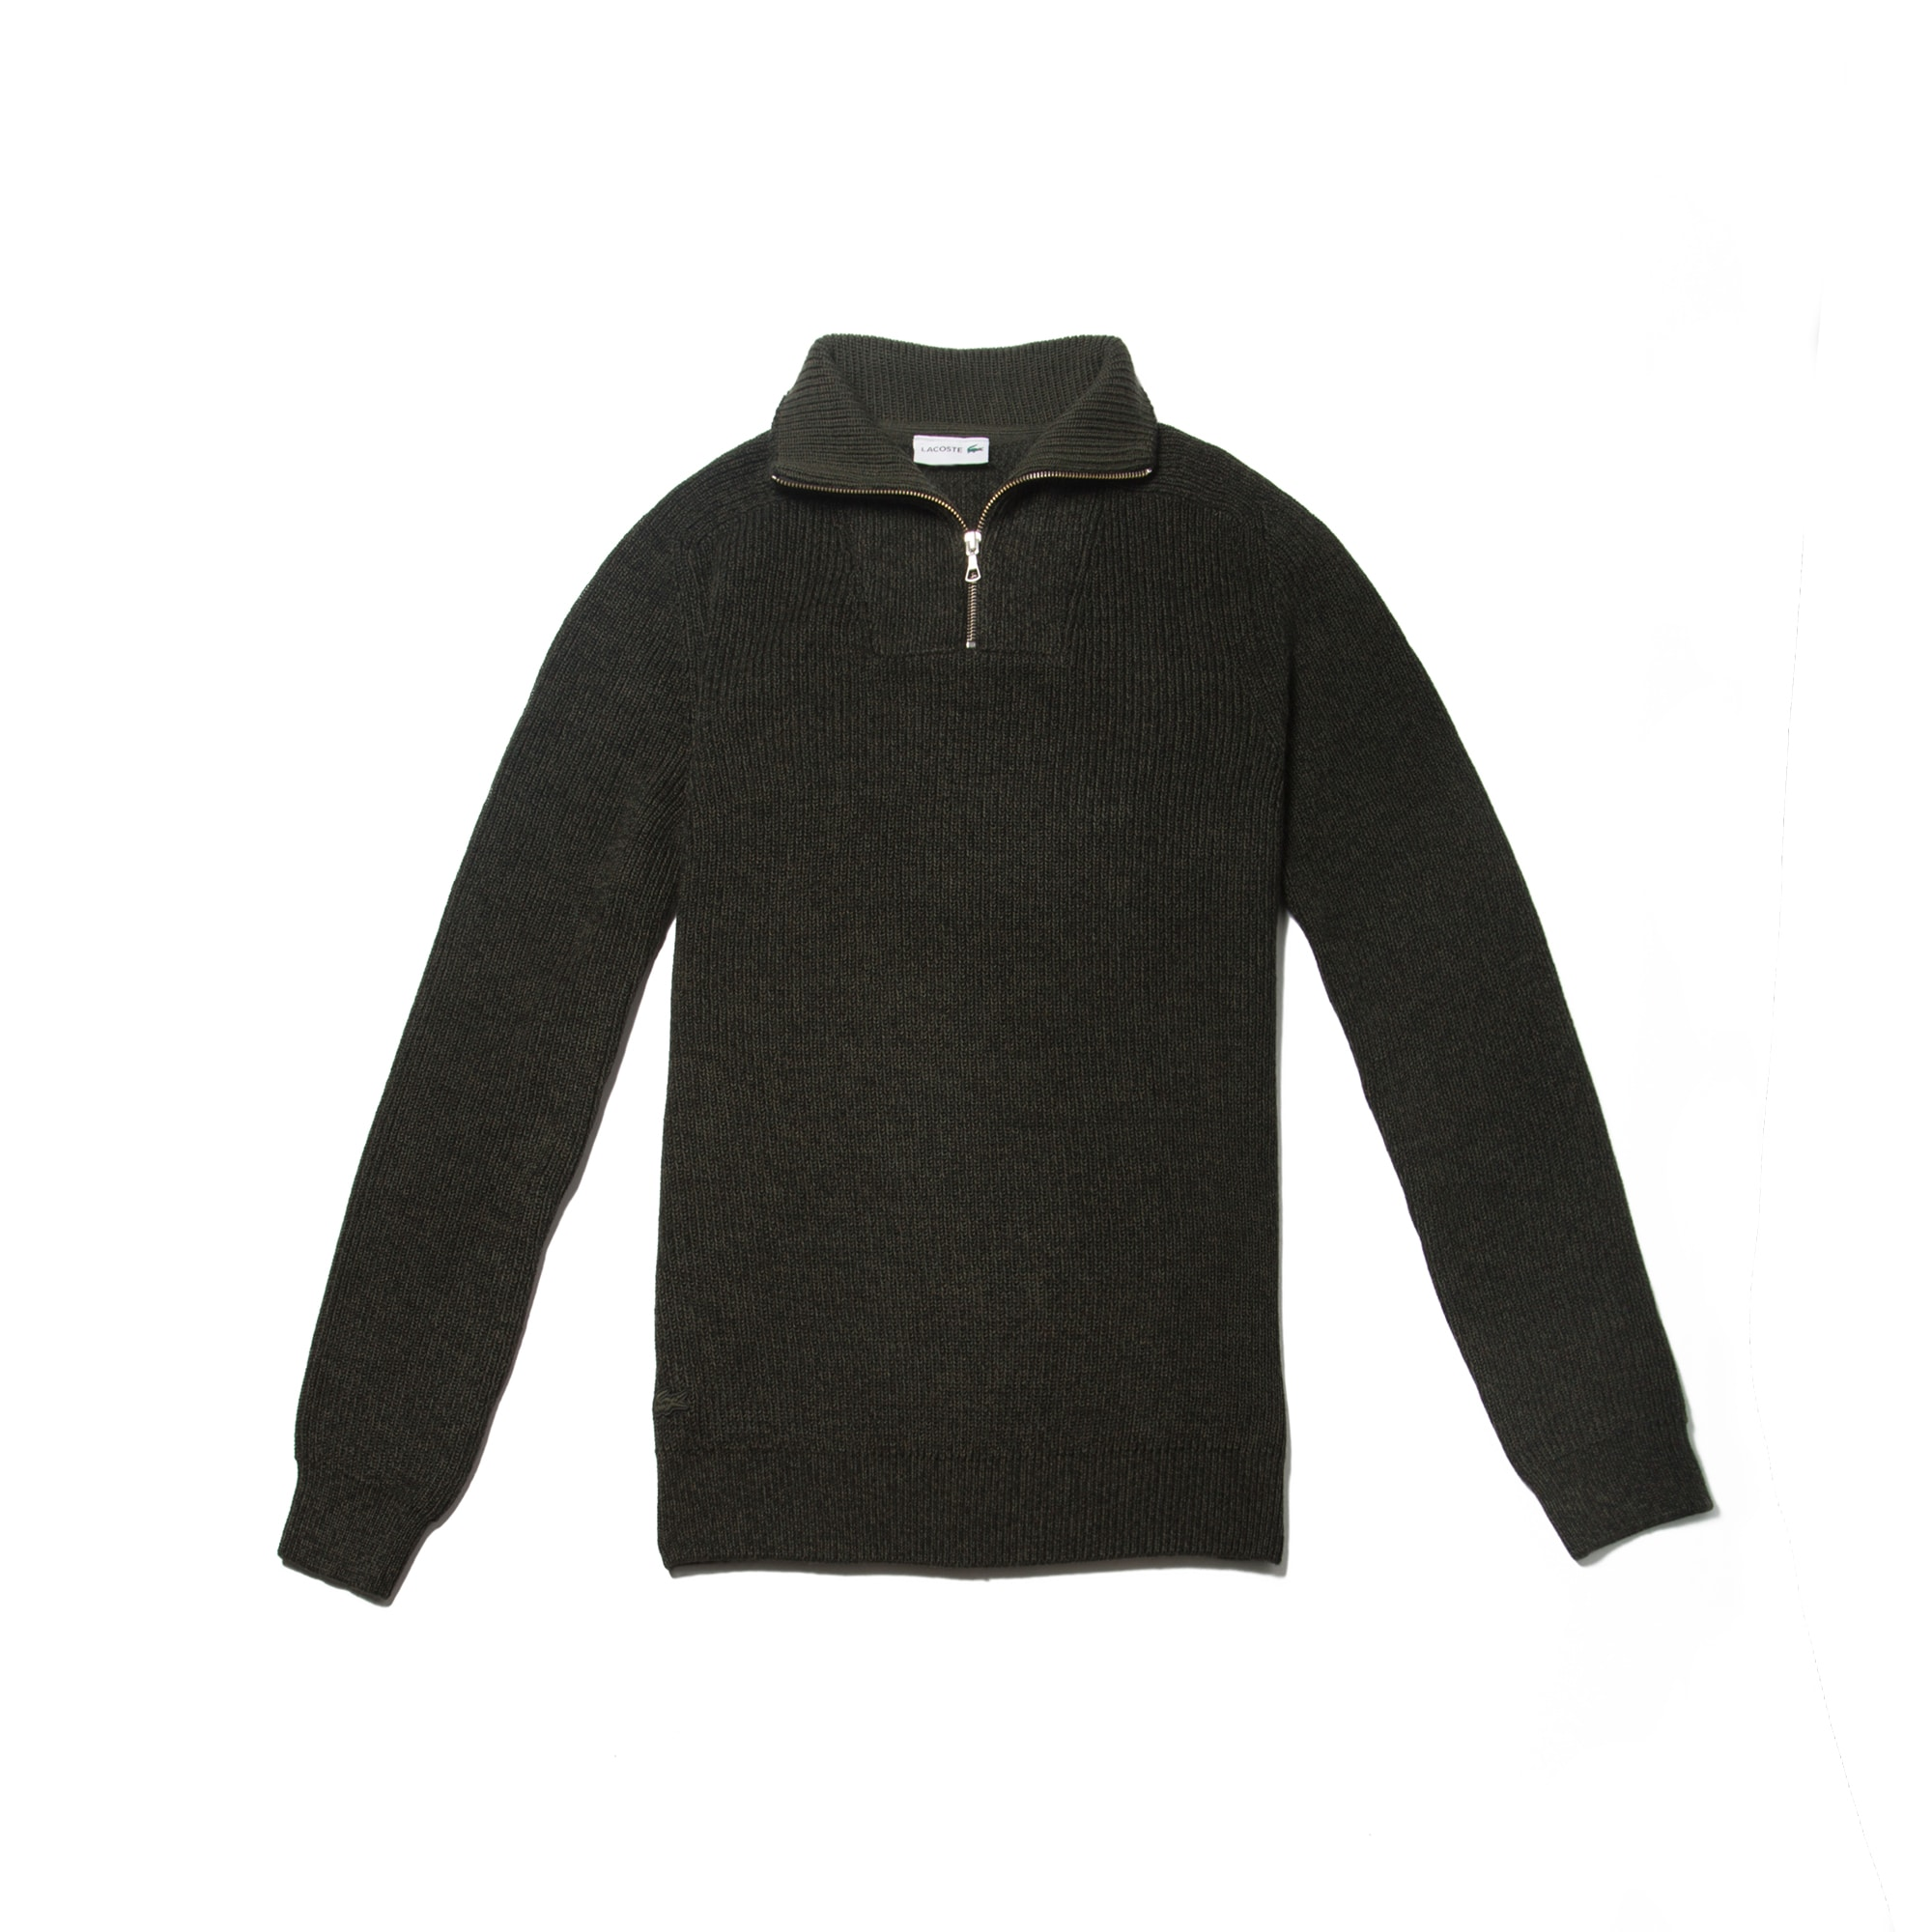 Men's Zippered Stand-Up Collar Ribbed Wool Sweater